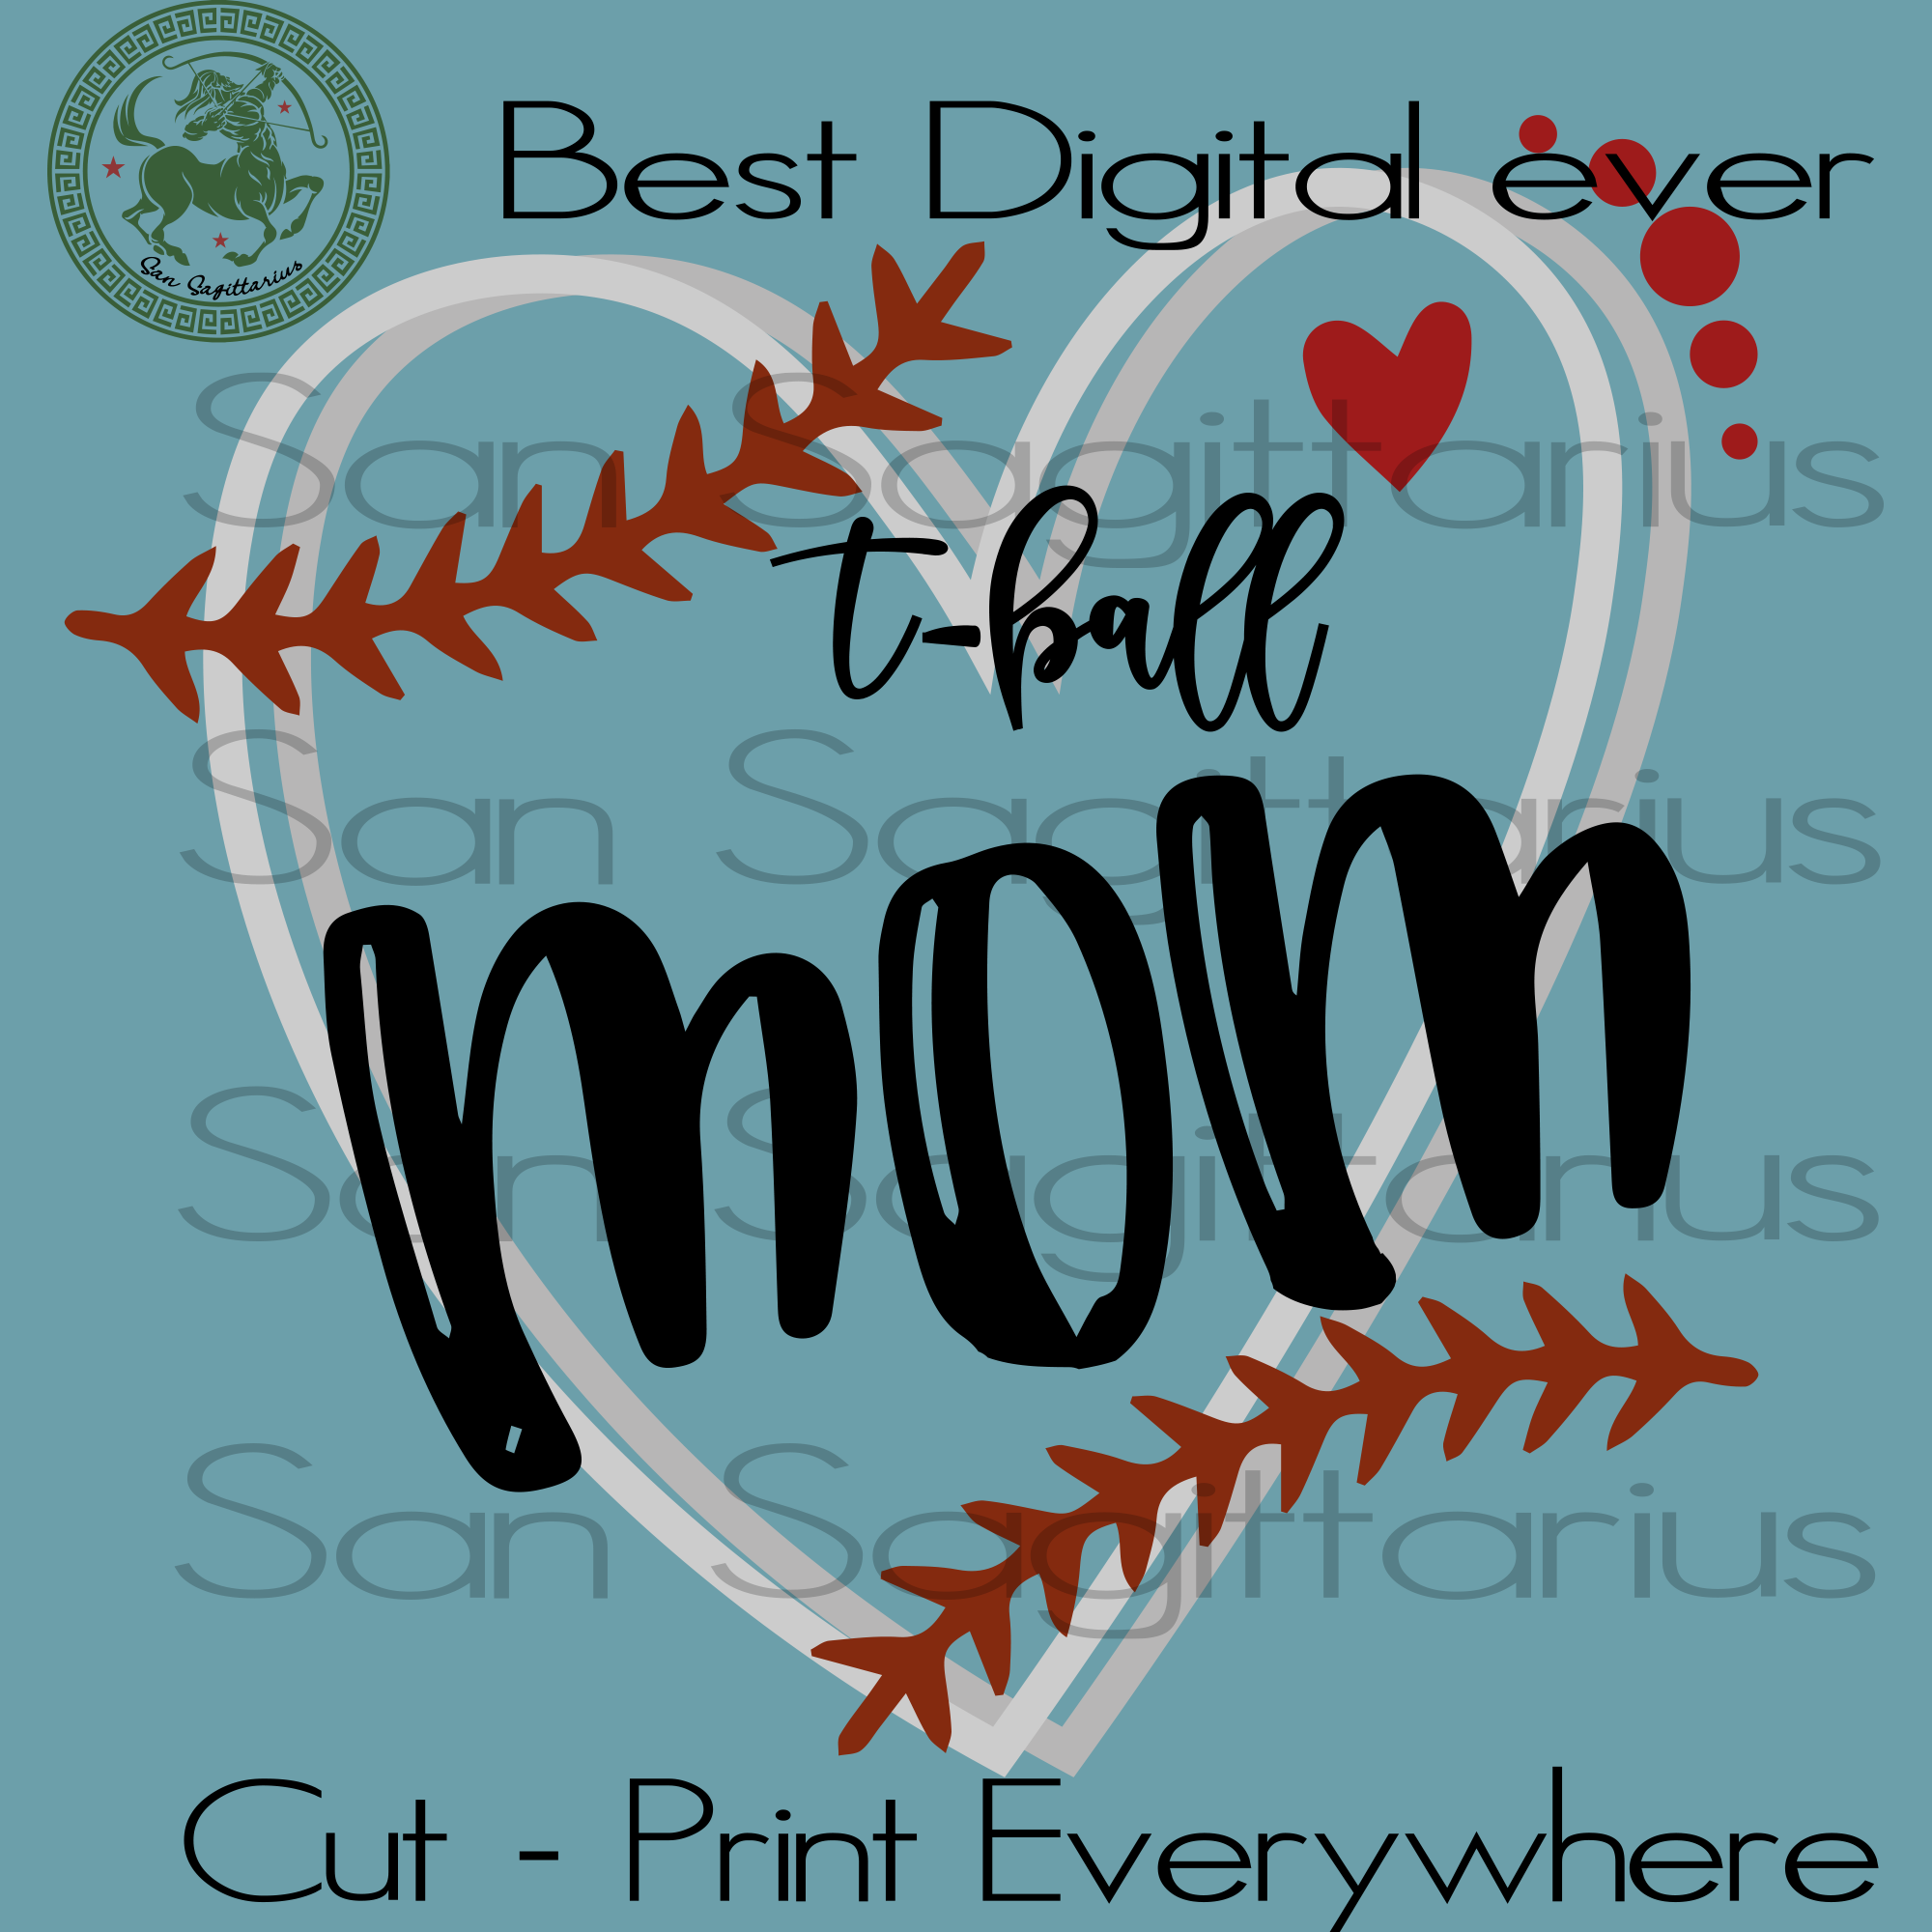 T-ball mom gift, Sport Mom Gift Svg, Mom Shirt Svg, t ball Vector Clipart Svg, Birthday mom, Mothers Day, Dr Seuss Cut File, Birthday Customized, t-ball SVG Files For Silhouette Instant Download | San Sagittarius